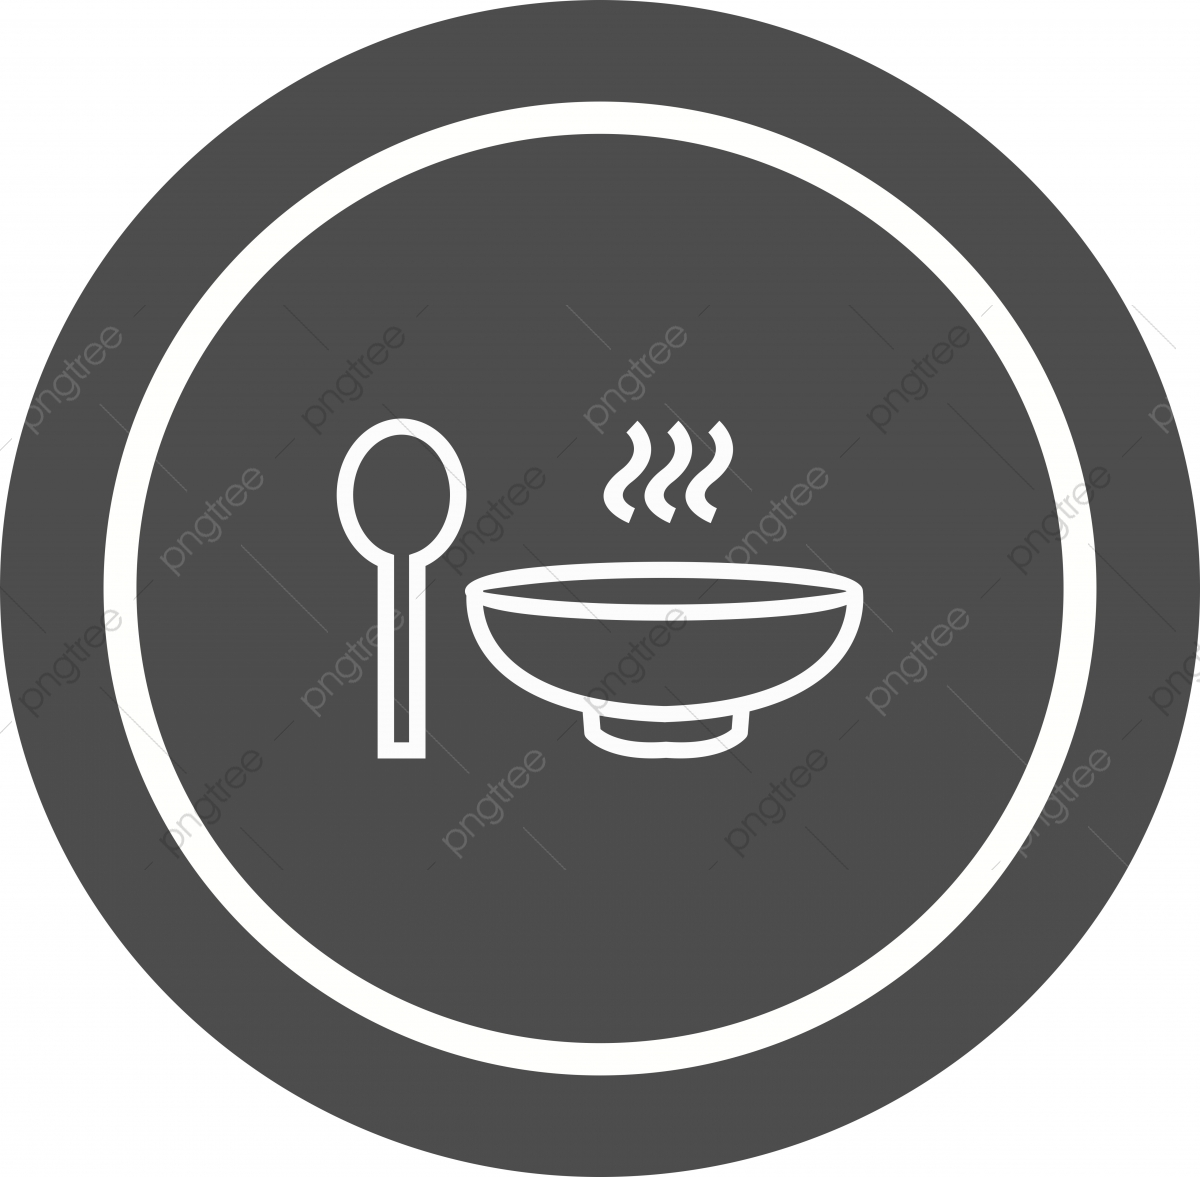 Soup Icon Design Chinese Hot Noodles Png And Vector With Transparent Background For Free Download